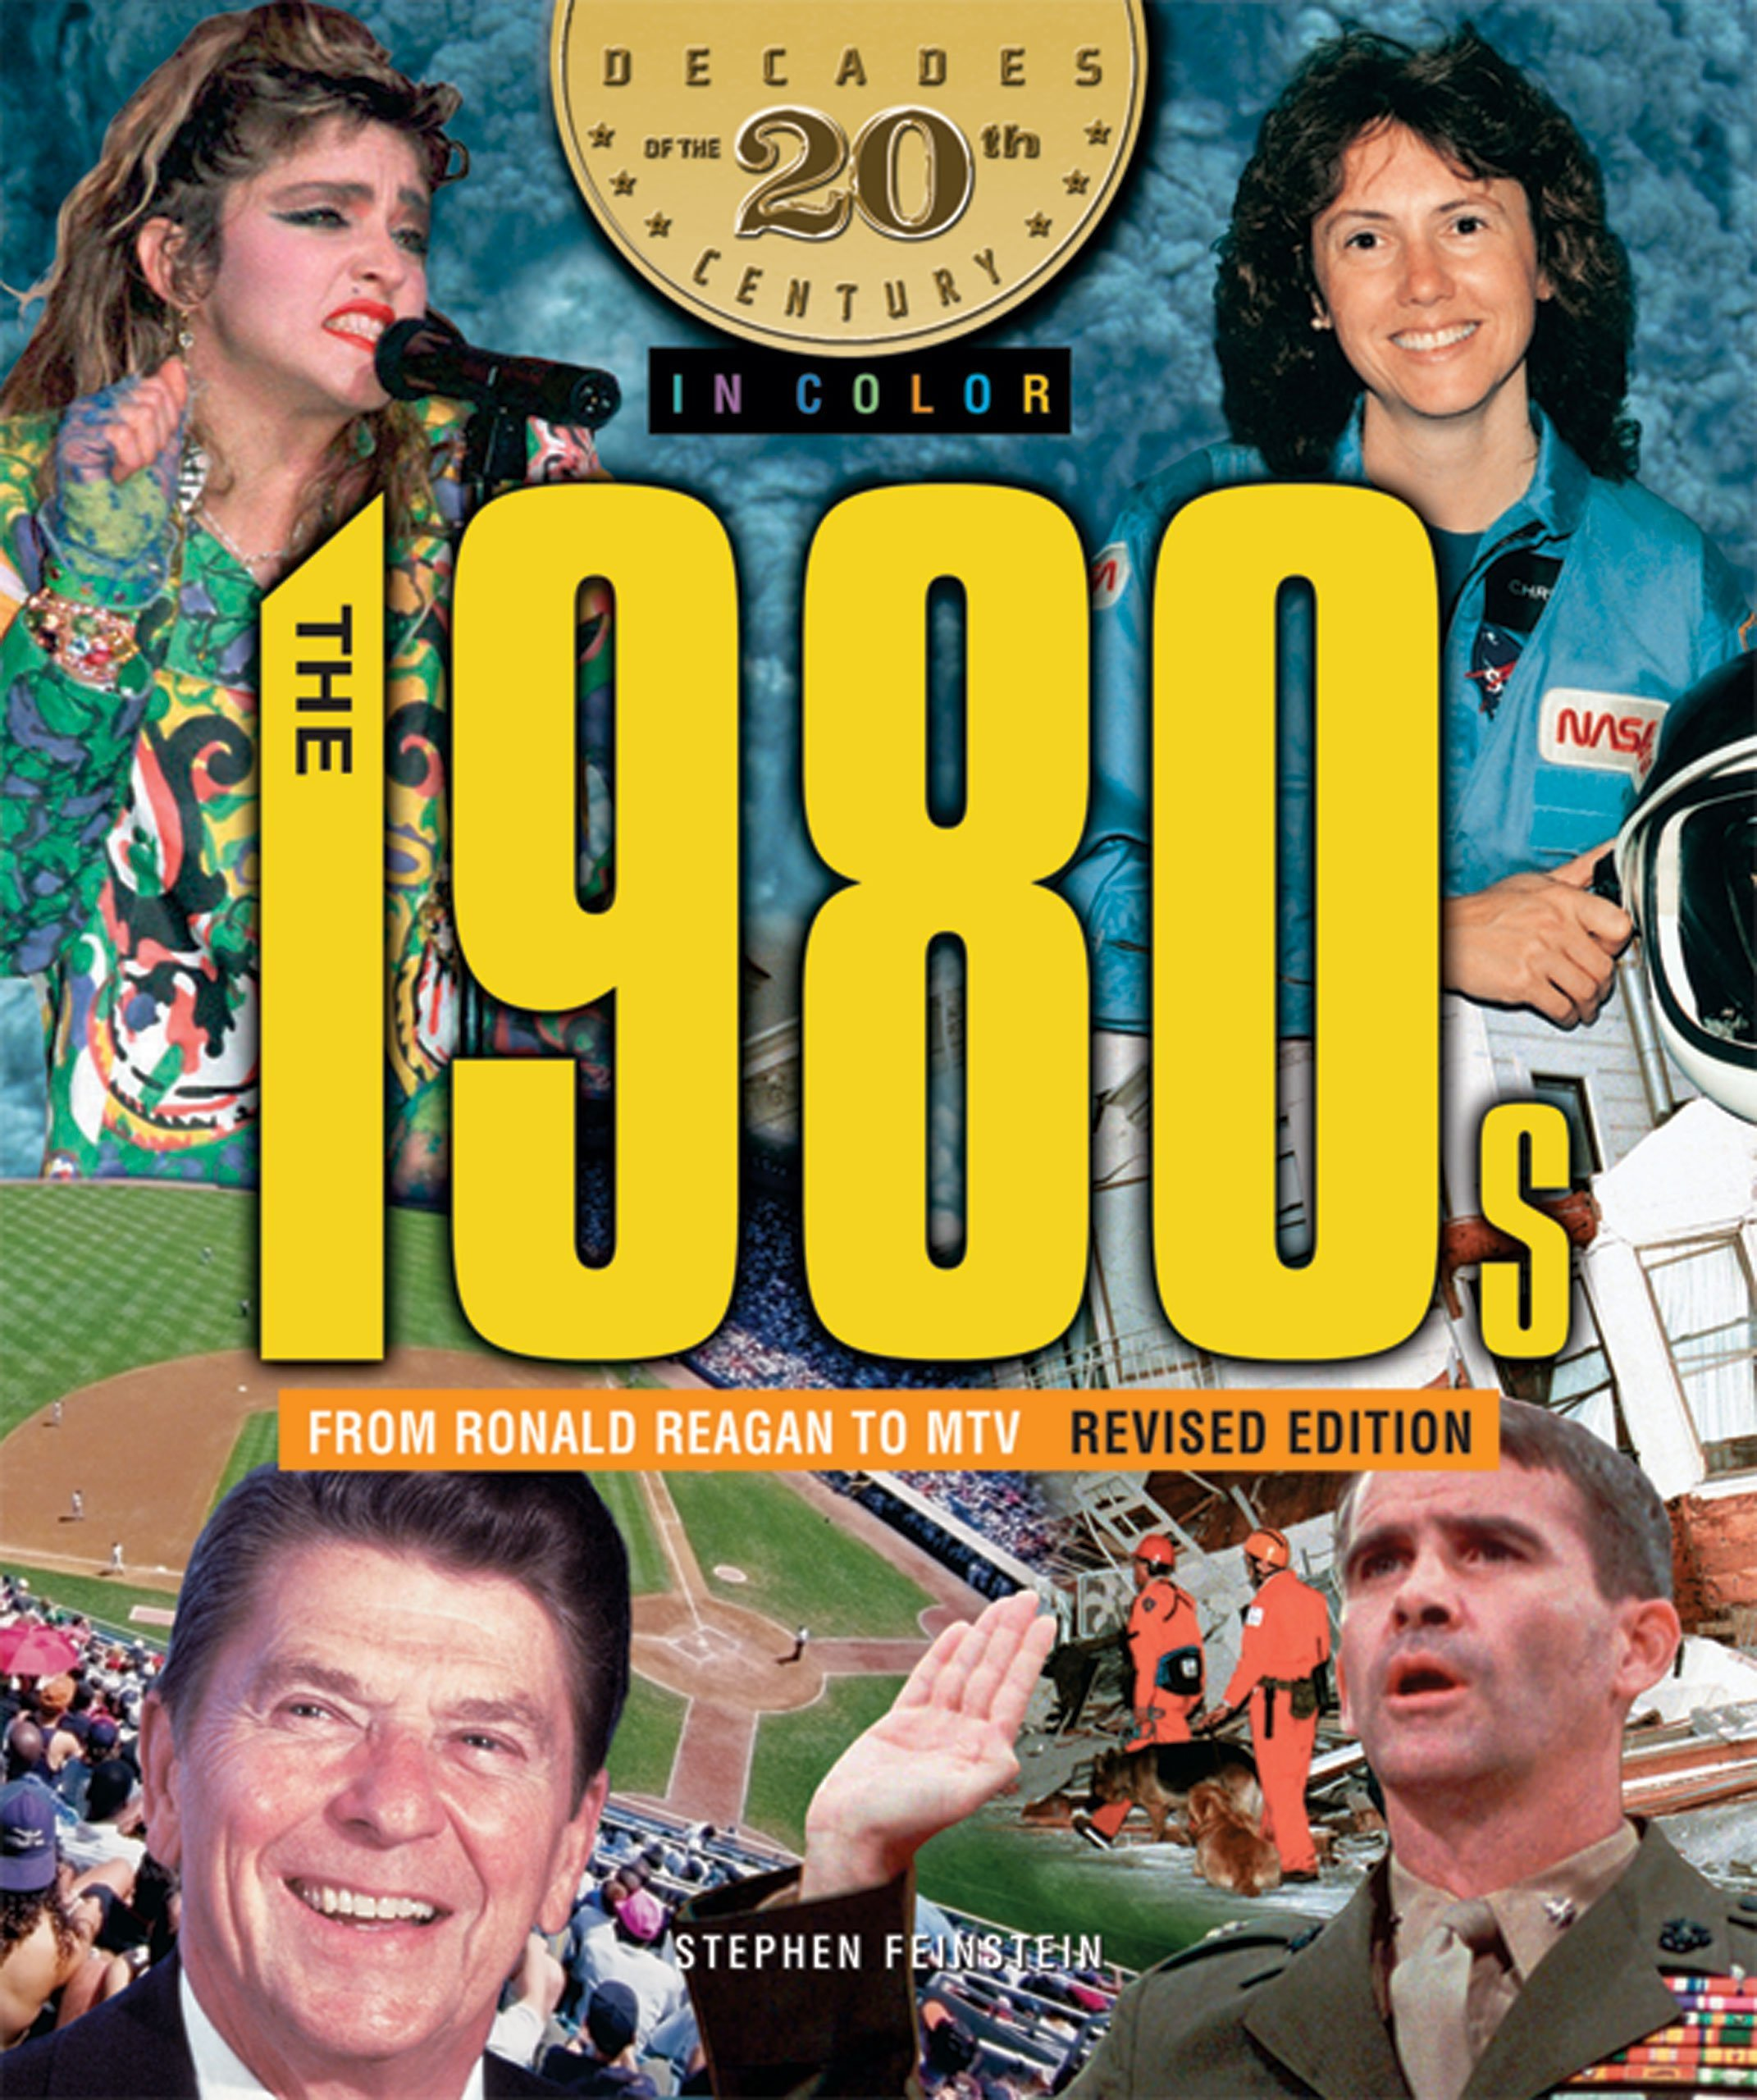 The 1980s From Ronald Reagan To Mtv Decades Of The 20th Century In